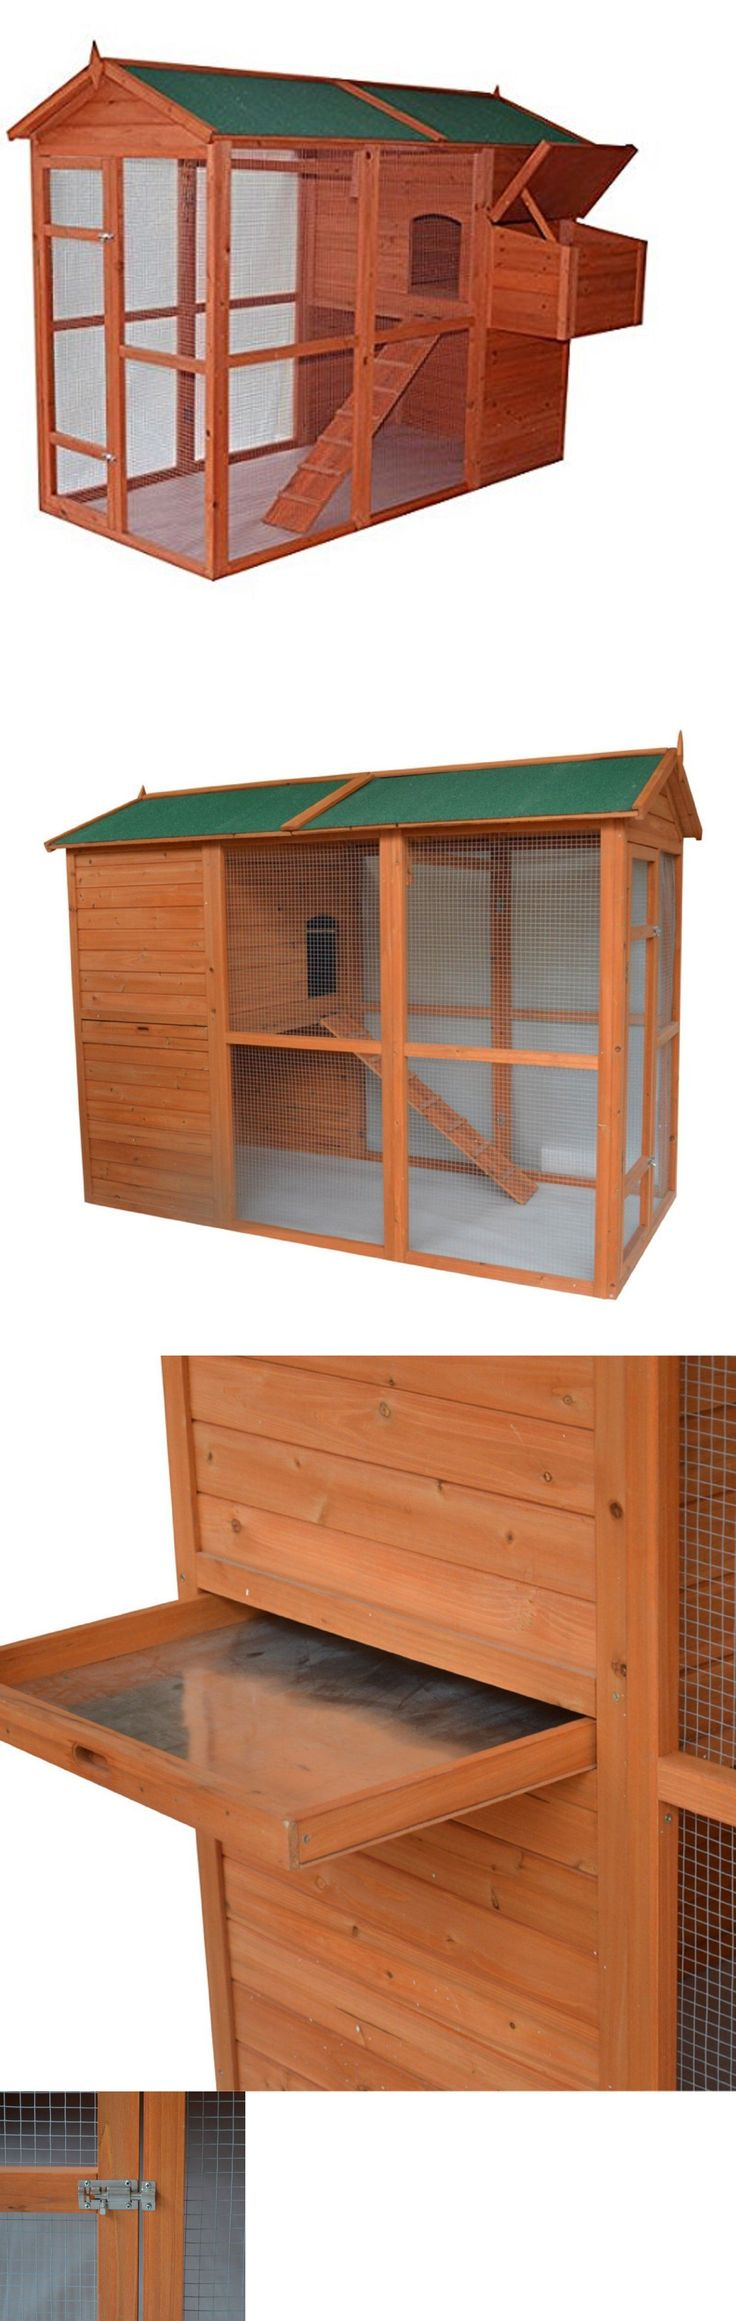 best 25 rabbit run ideas on pinterest outdoor rabbit hutch